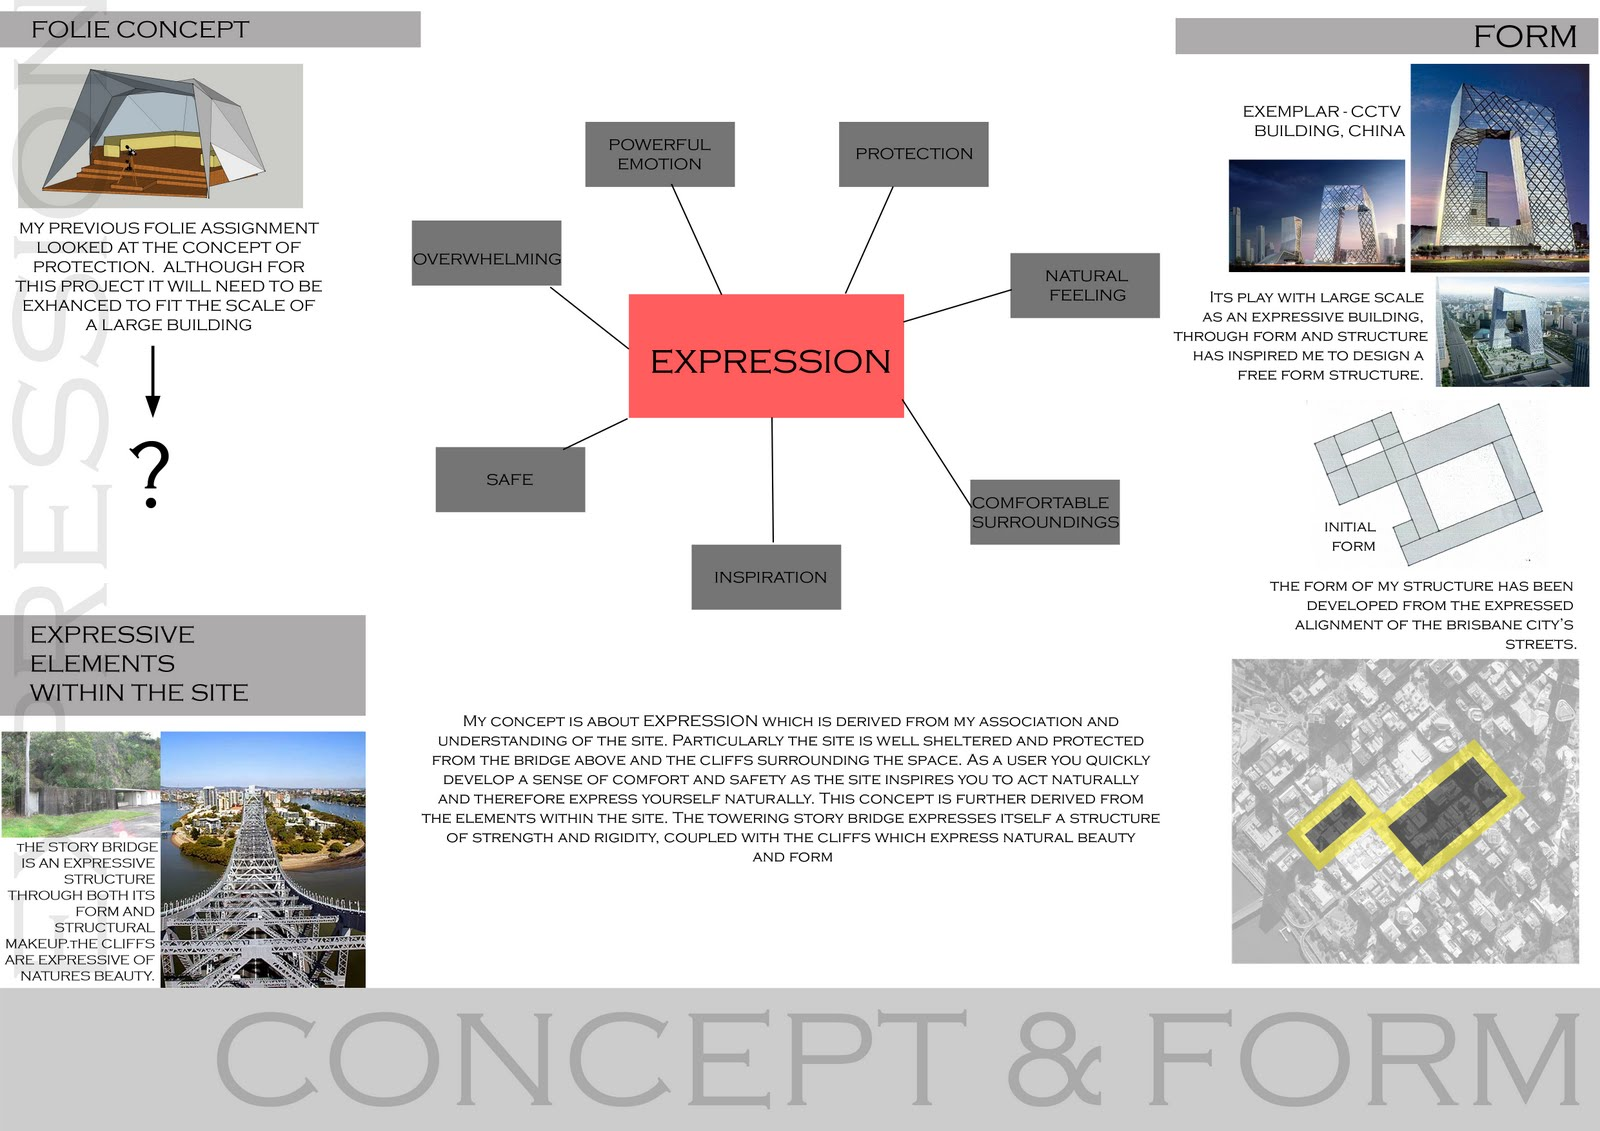 architecture design concept dab510 architectural design